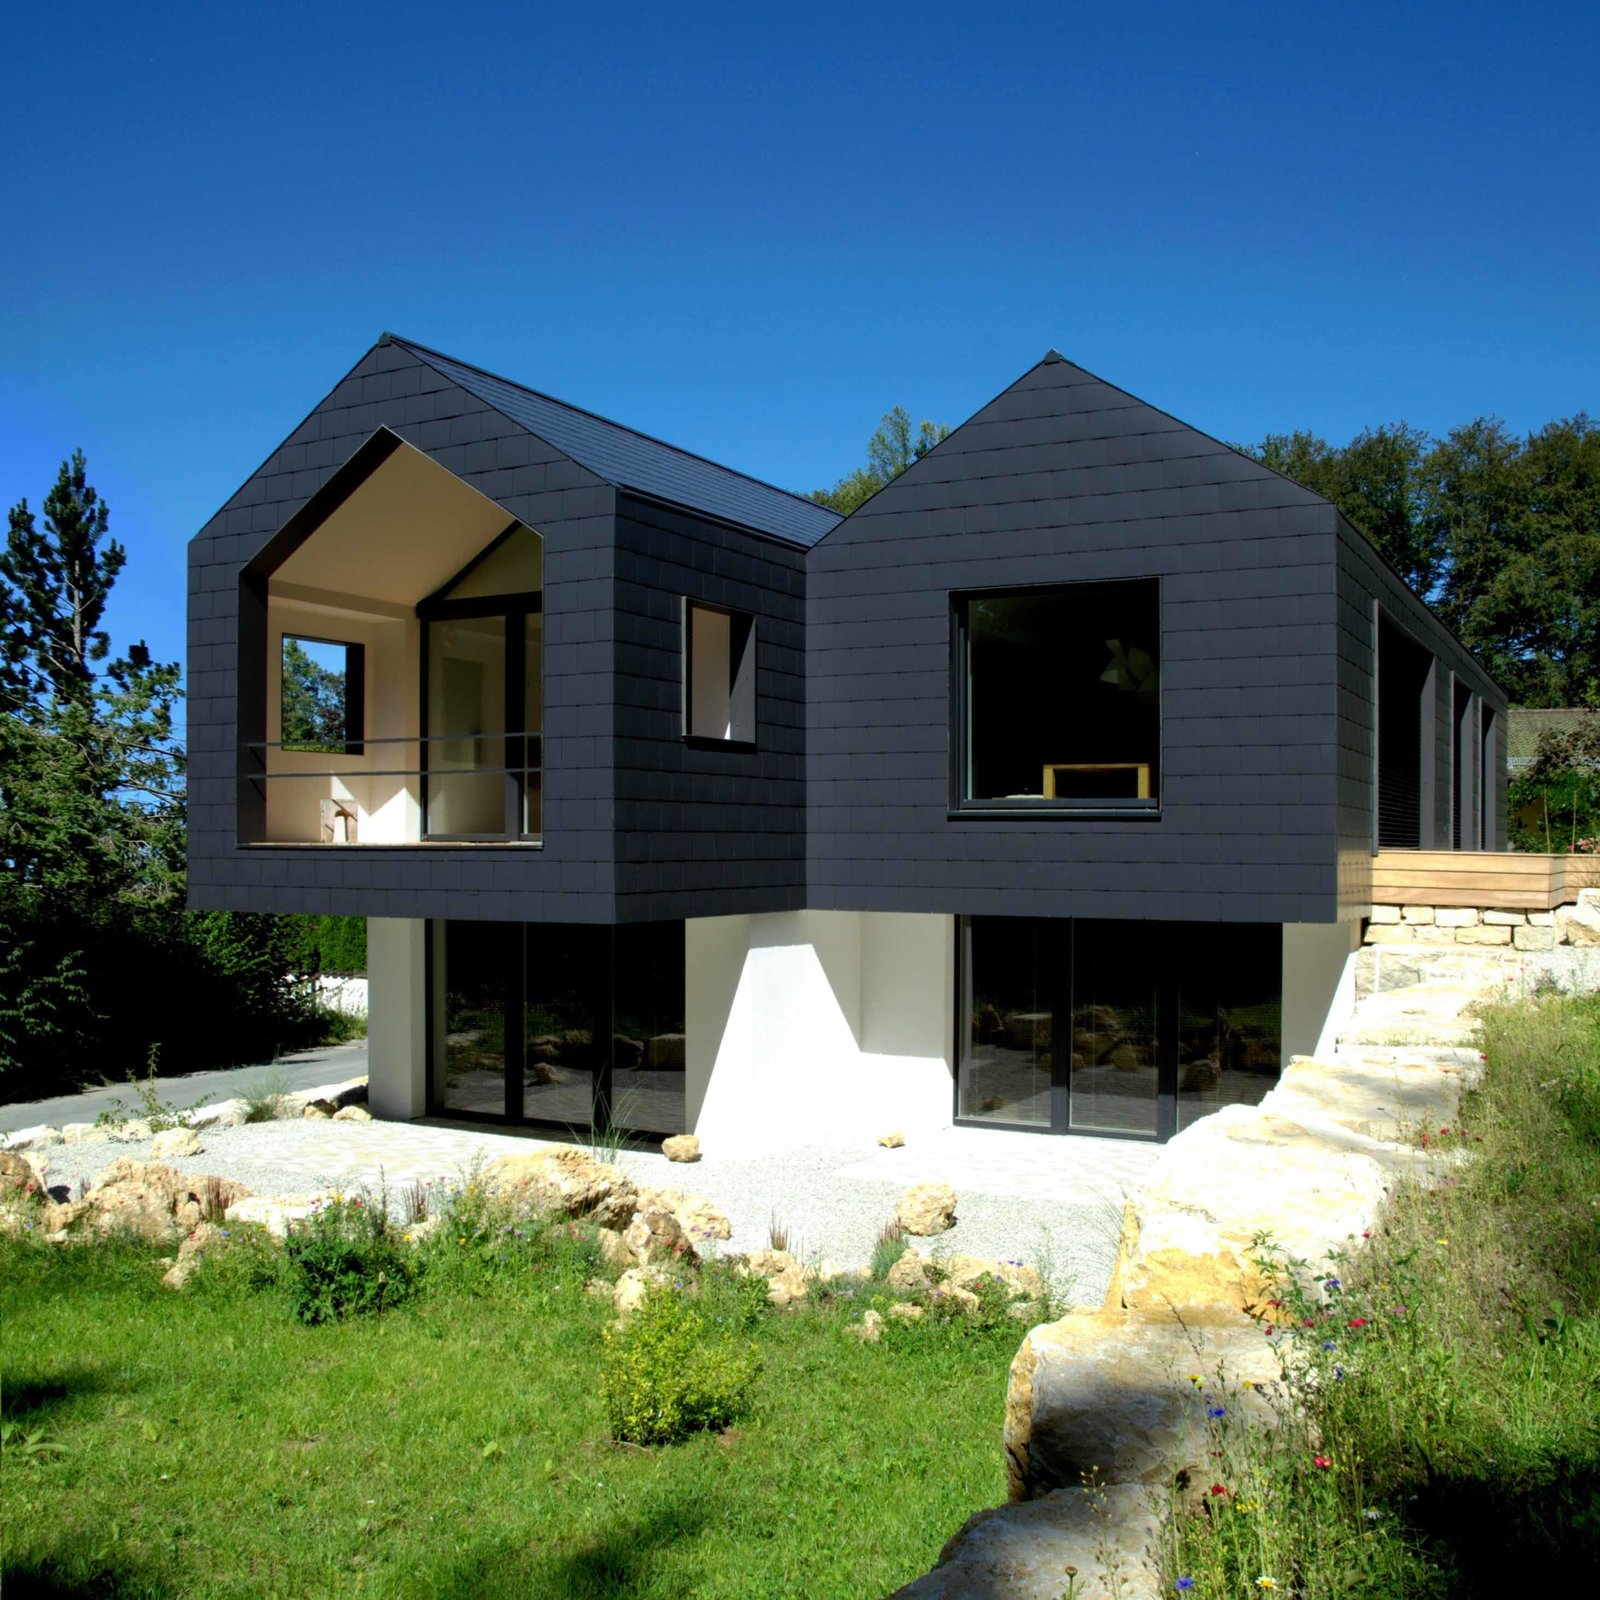 Exterior, Gable RoofLine, Metal Siding Material, and House Building Type  Refugium Betzenstein from Escape to a Bio-Passive Vacation Refuge in a Bavarian Nature Park